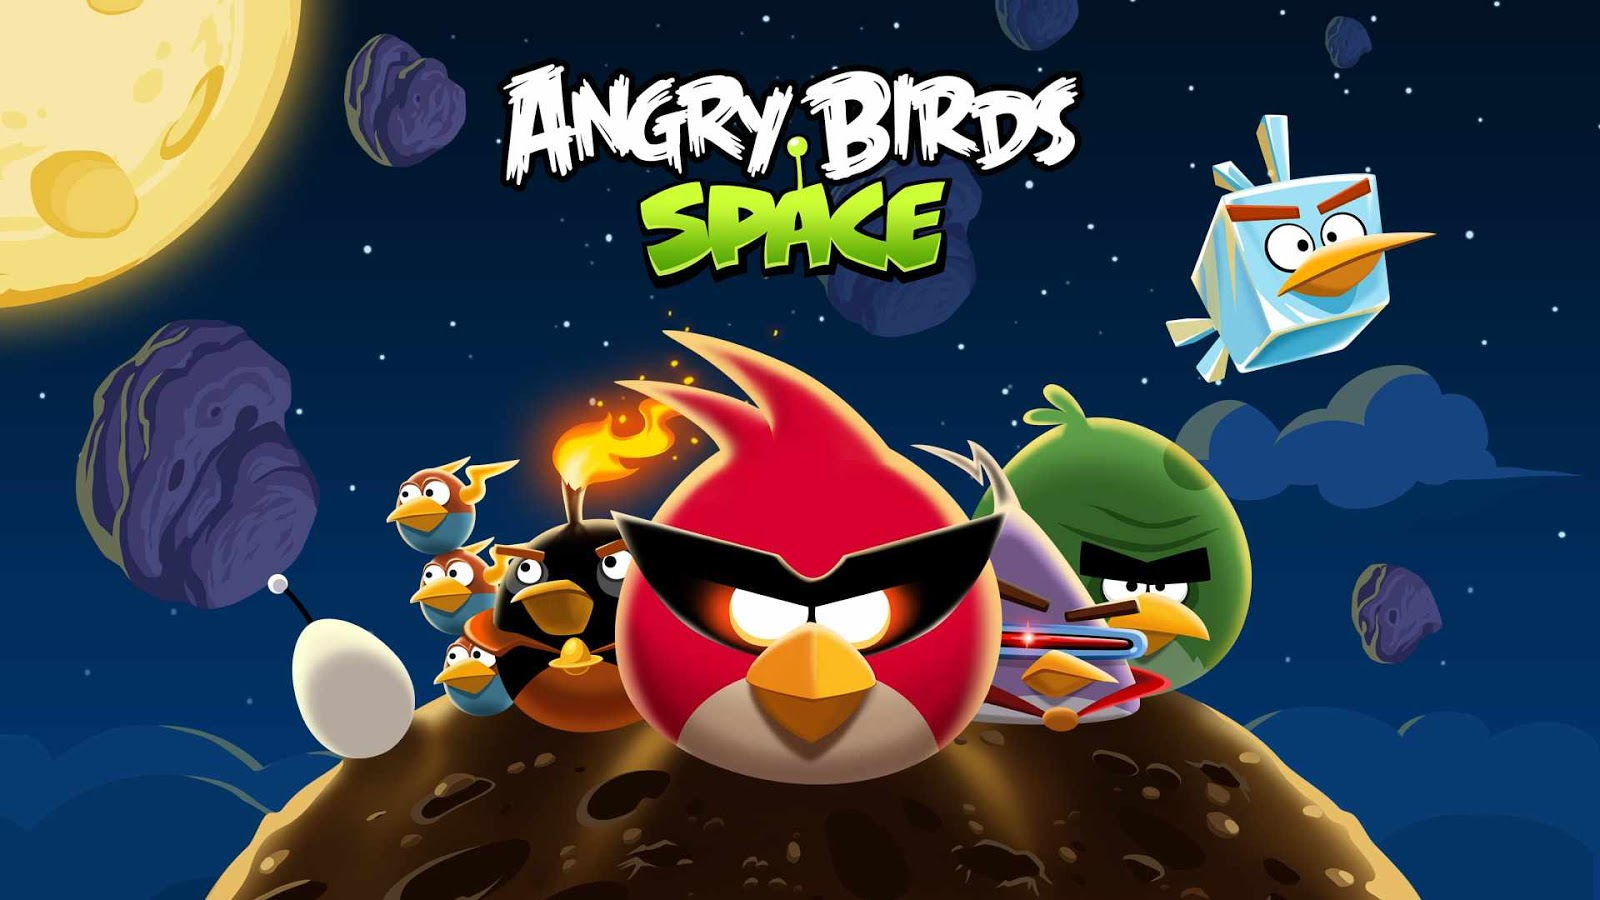 Download angry birds 240x400 landscape